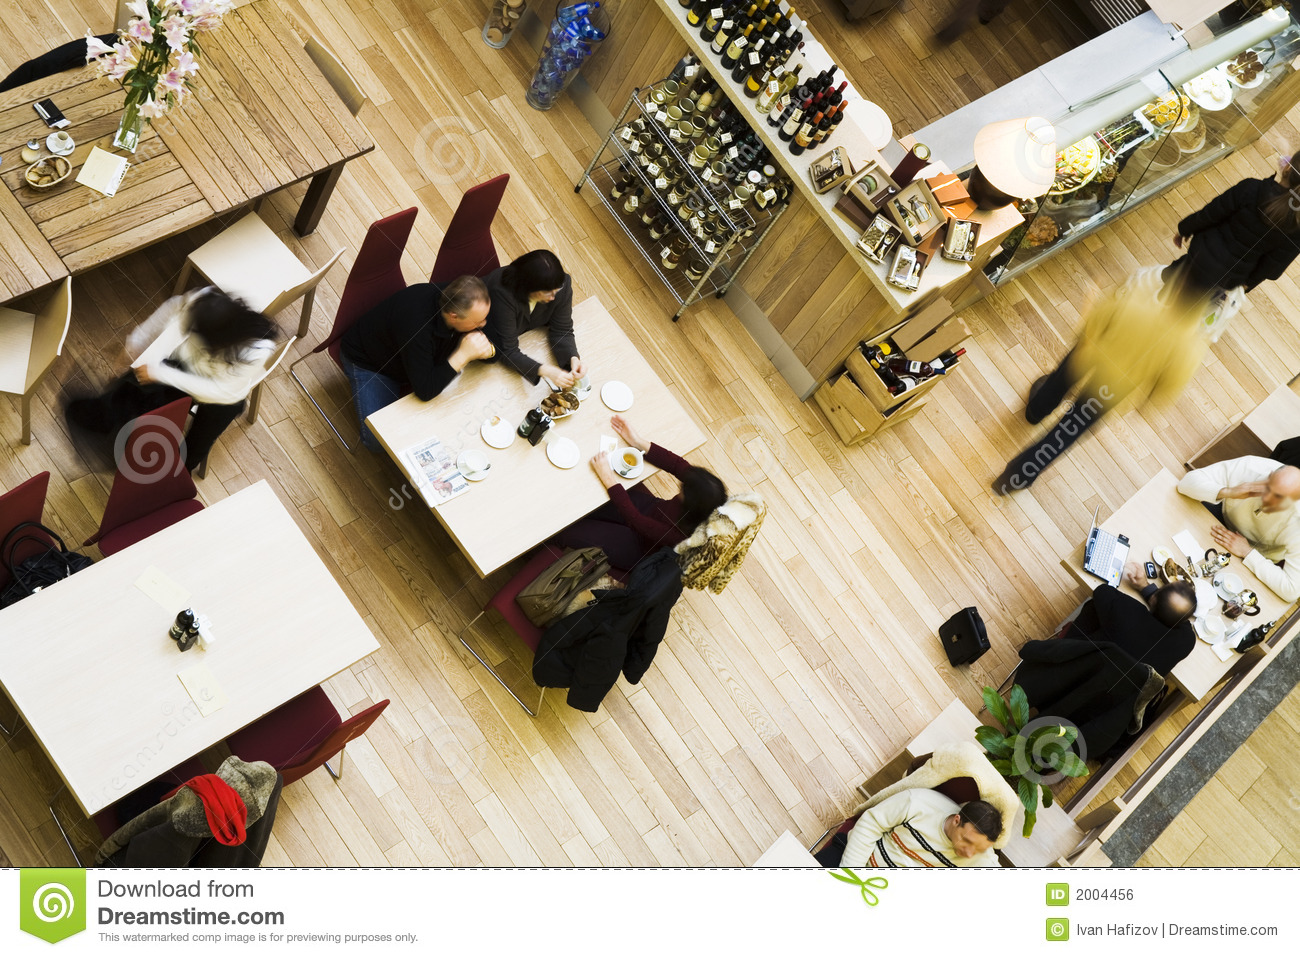 Cafe, top view